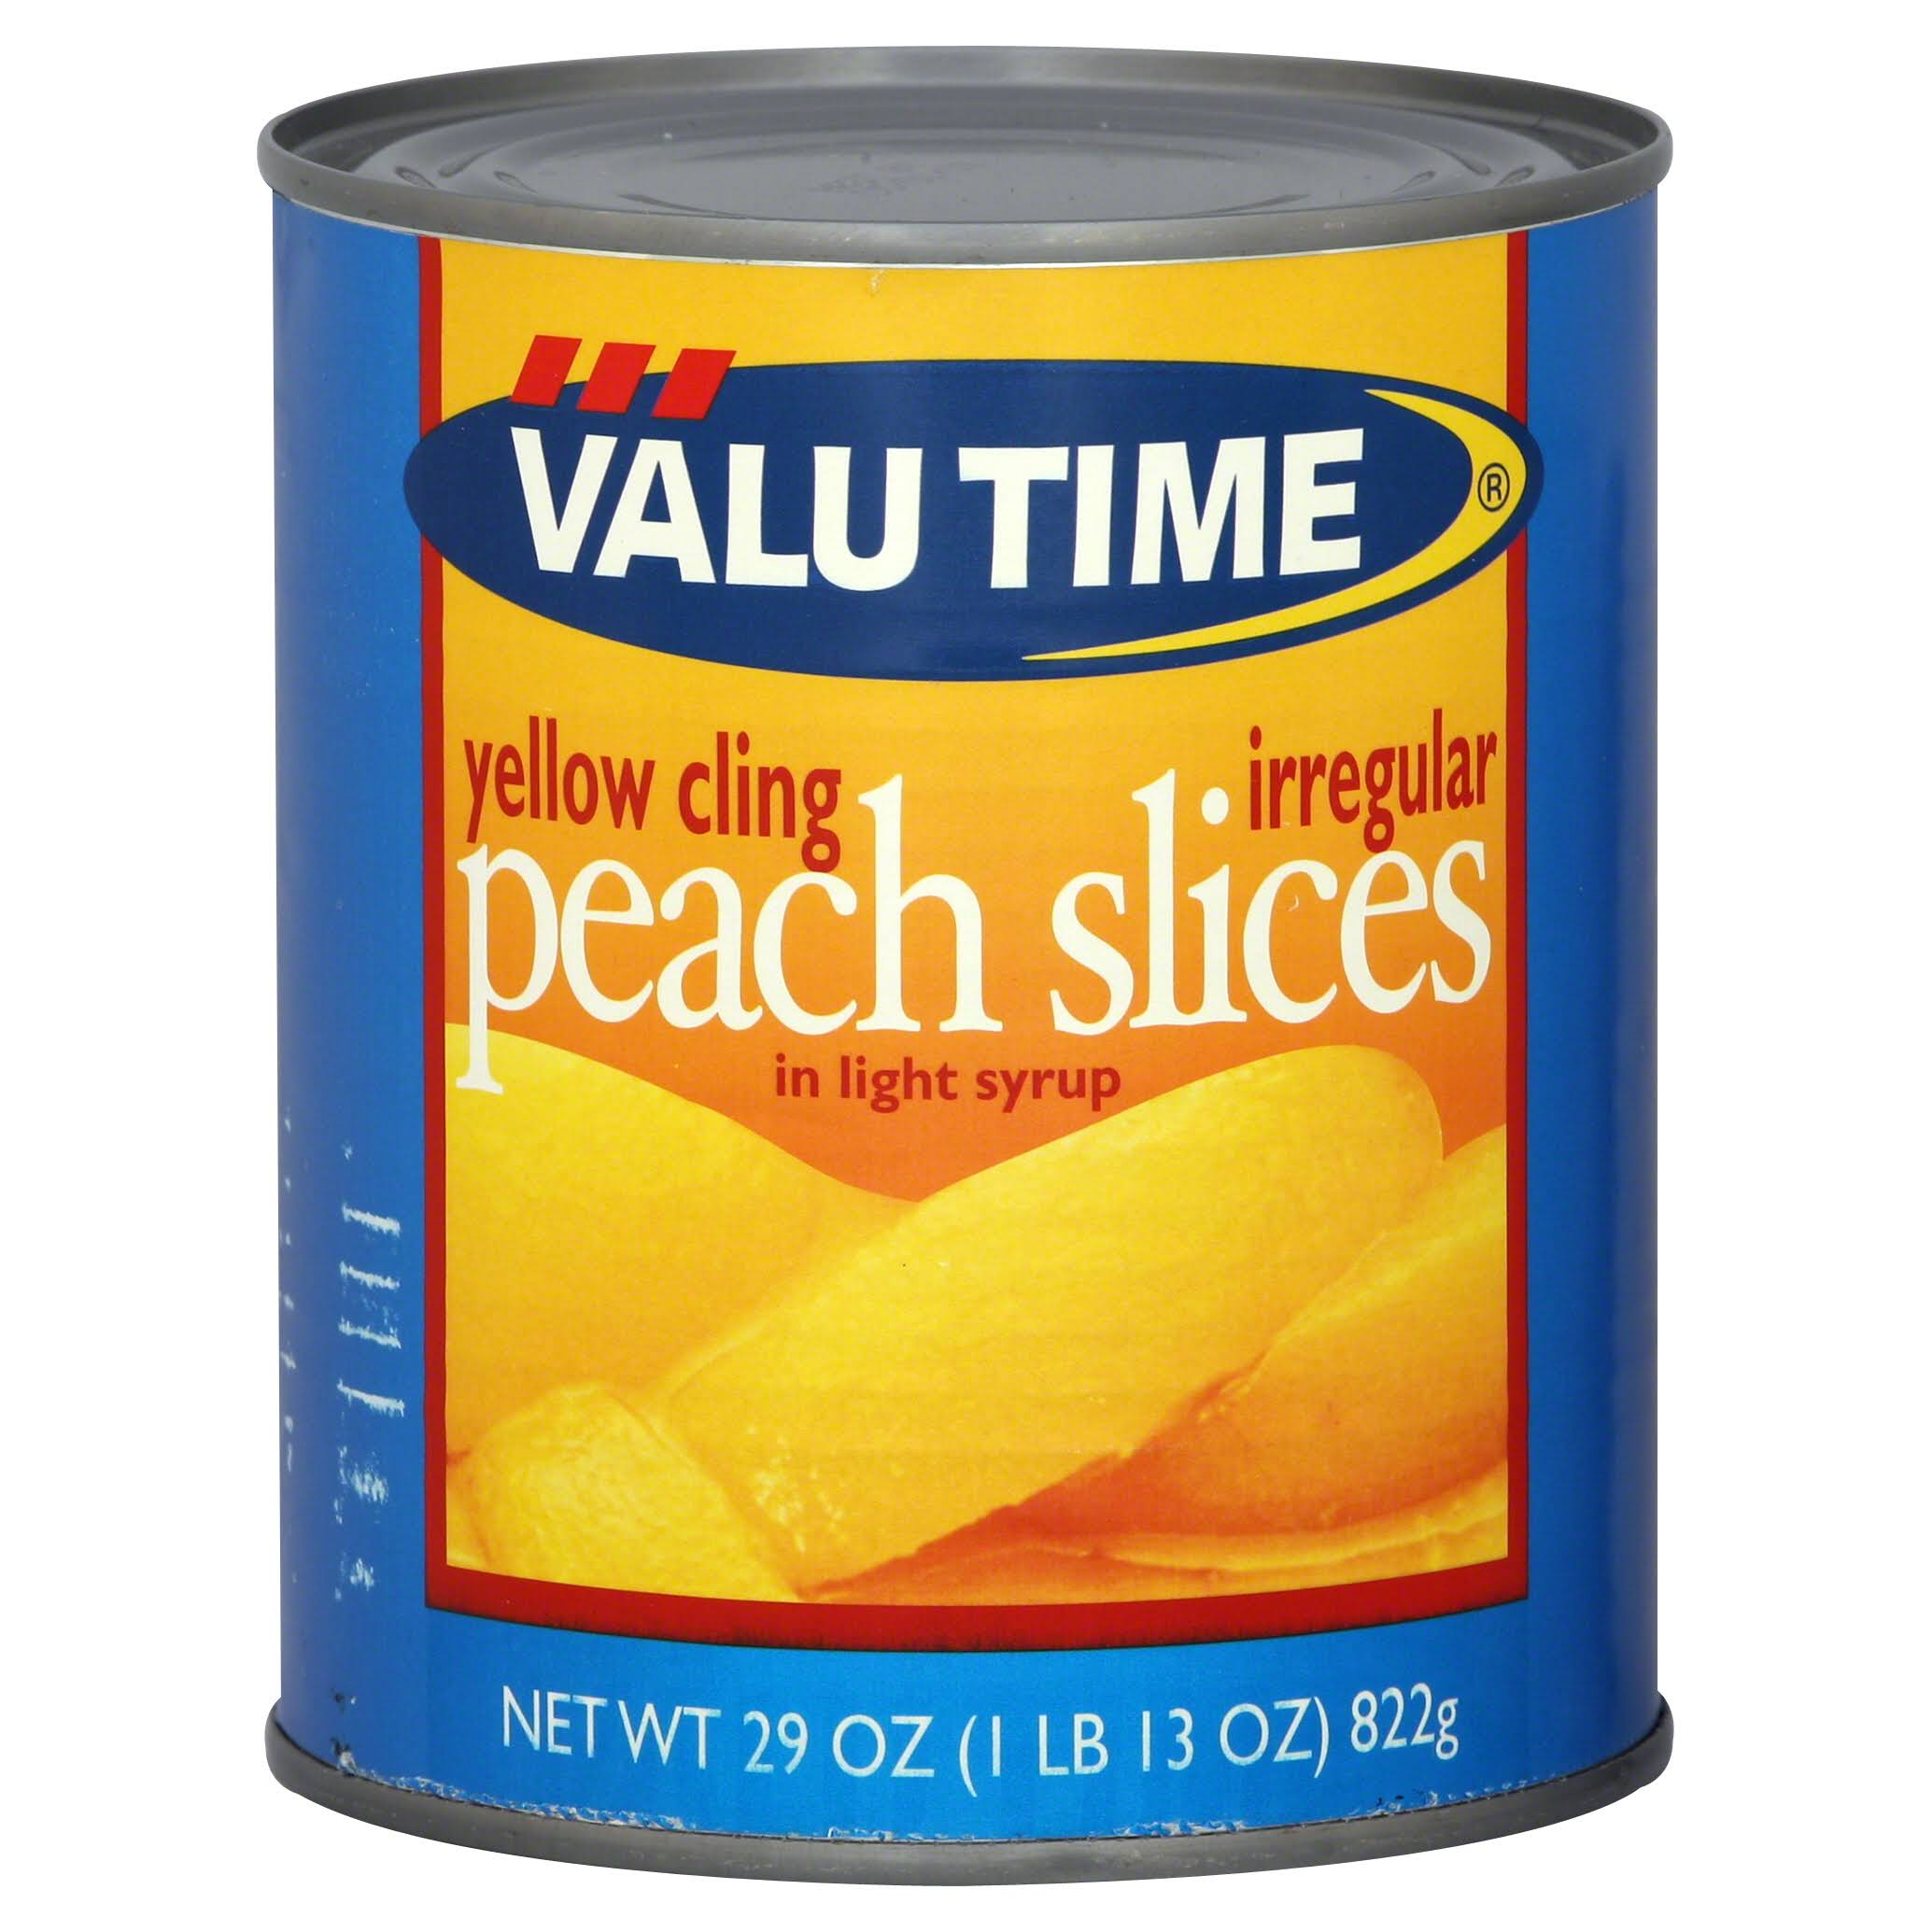 Valu Time Peach Slices, Yellow Cling, Irregular, in Light Syrup - 29 oz